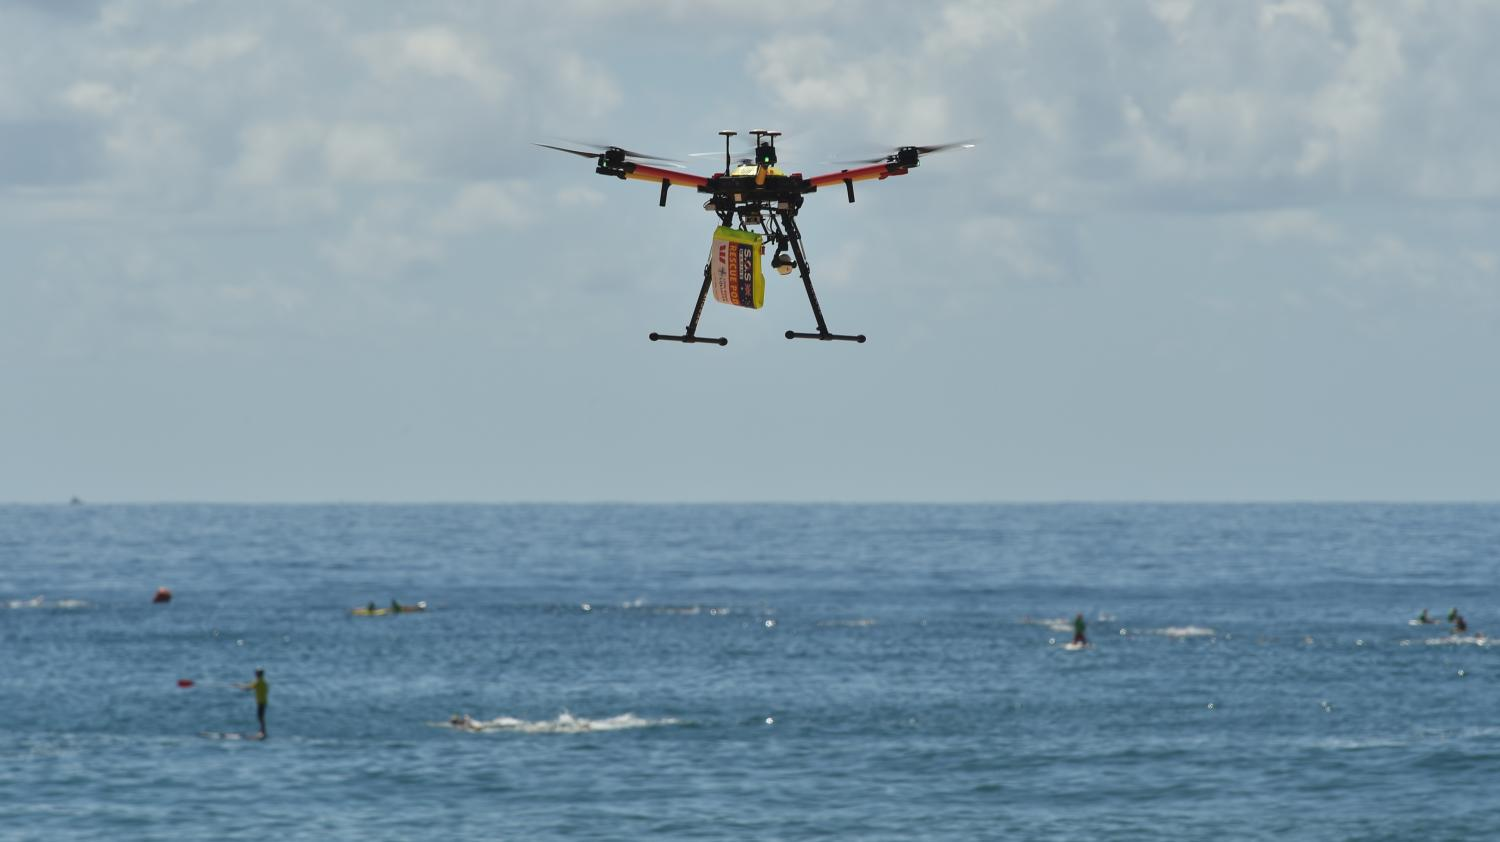 VIDEO. Australie : Des Nageurs Secourus En Mer Par Un Drone